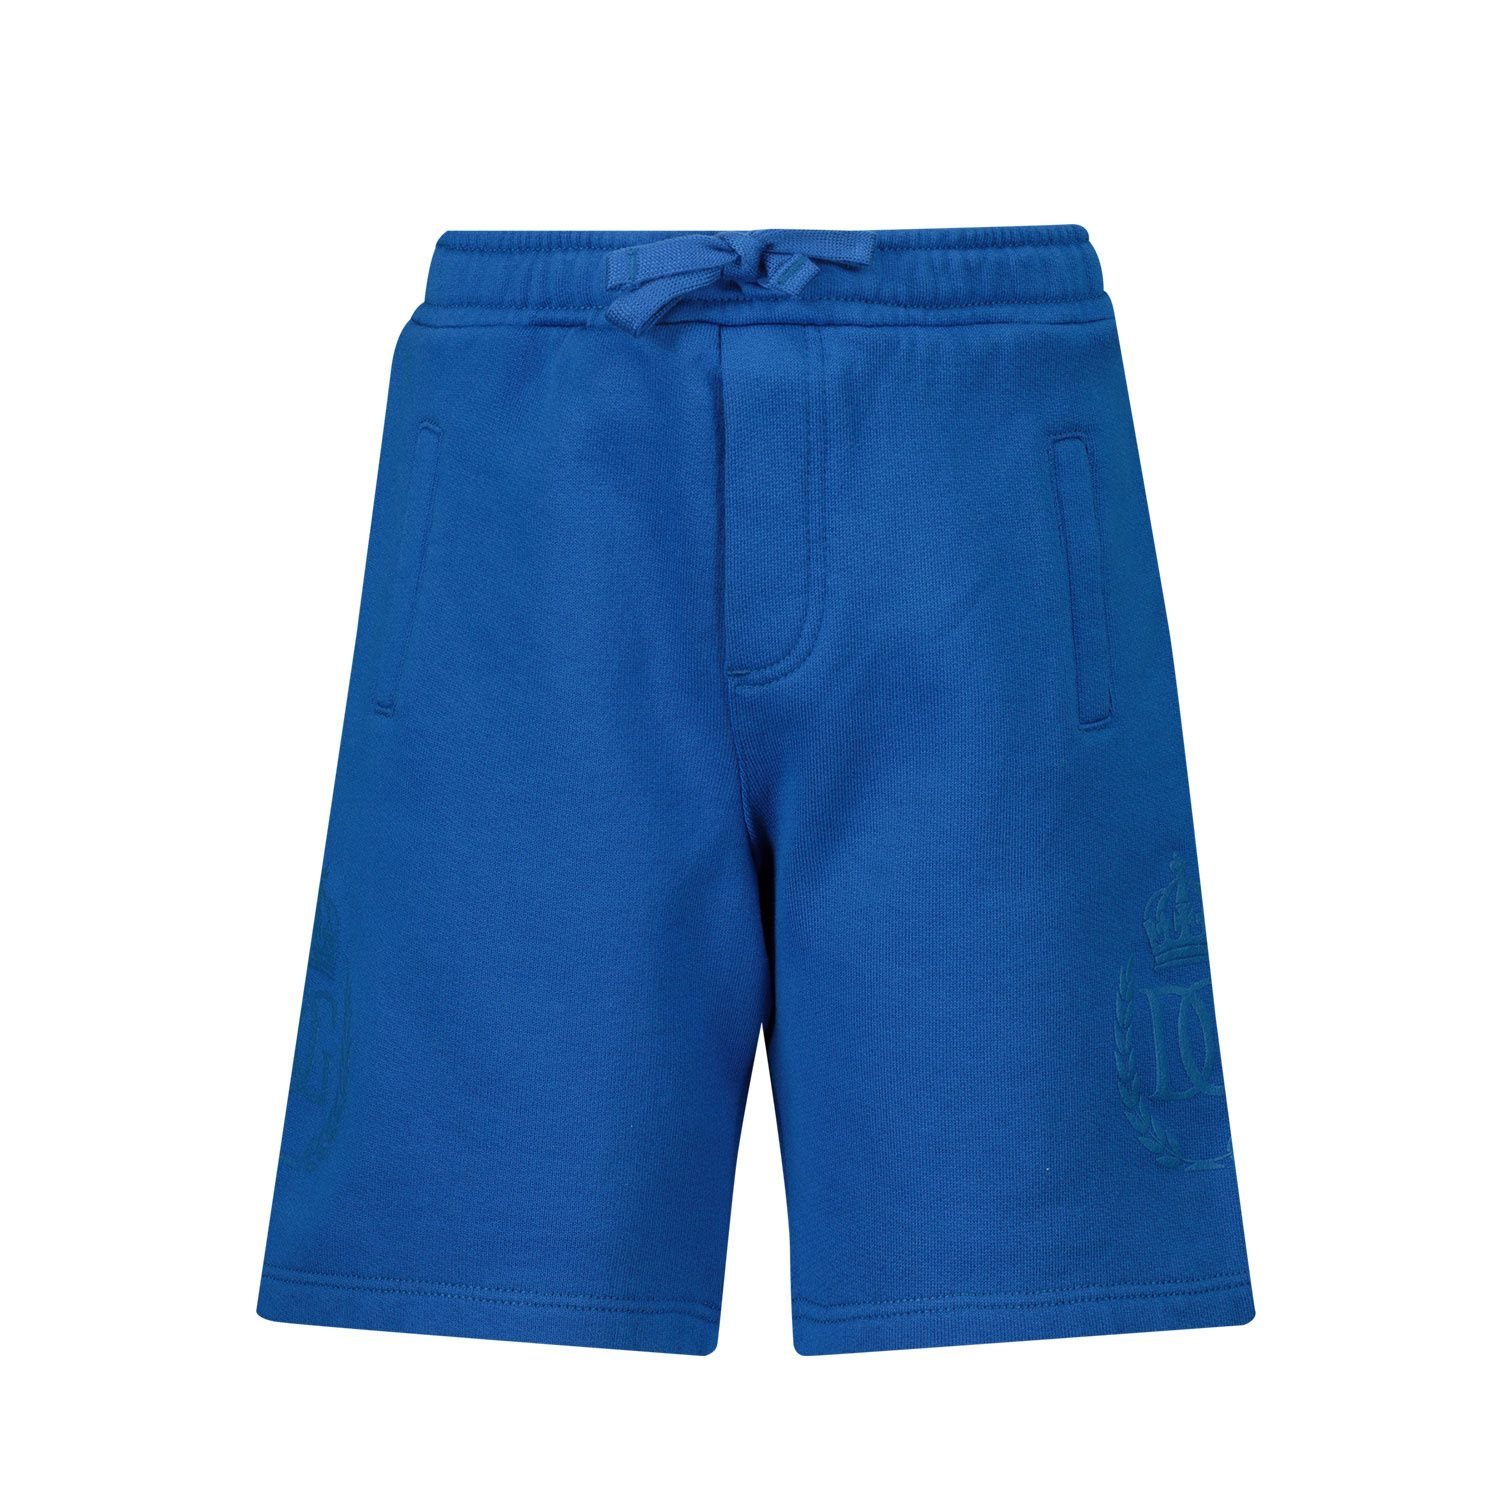 Picture of Dolce & Gabbana L1JQH5 G7YFI baby shorts turquoise